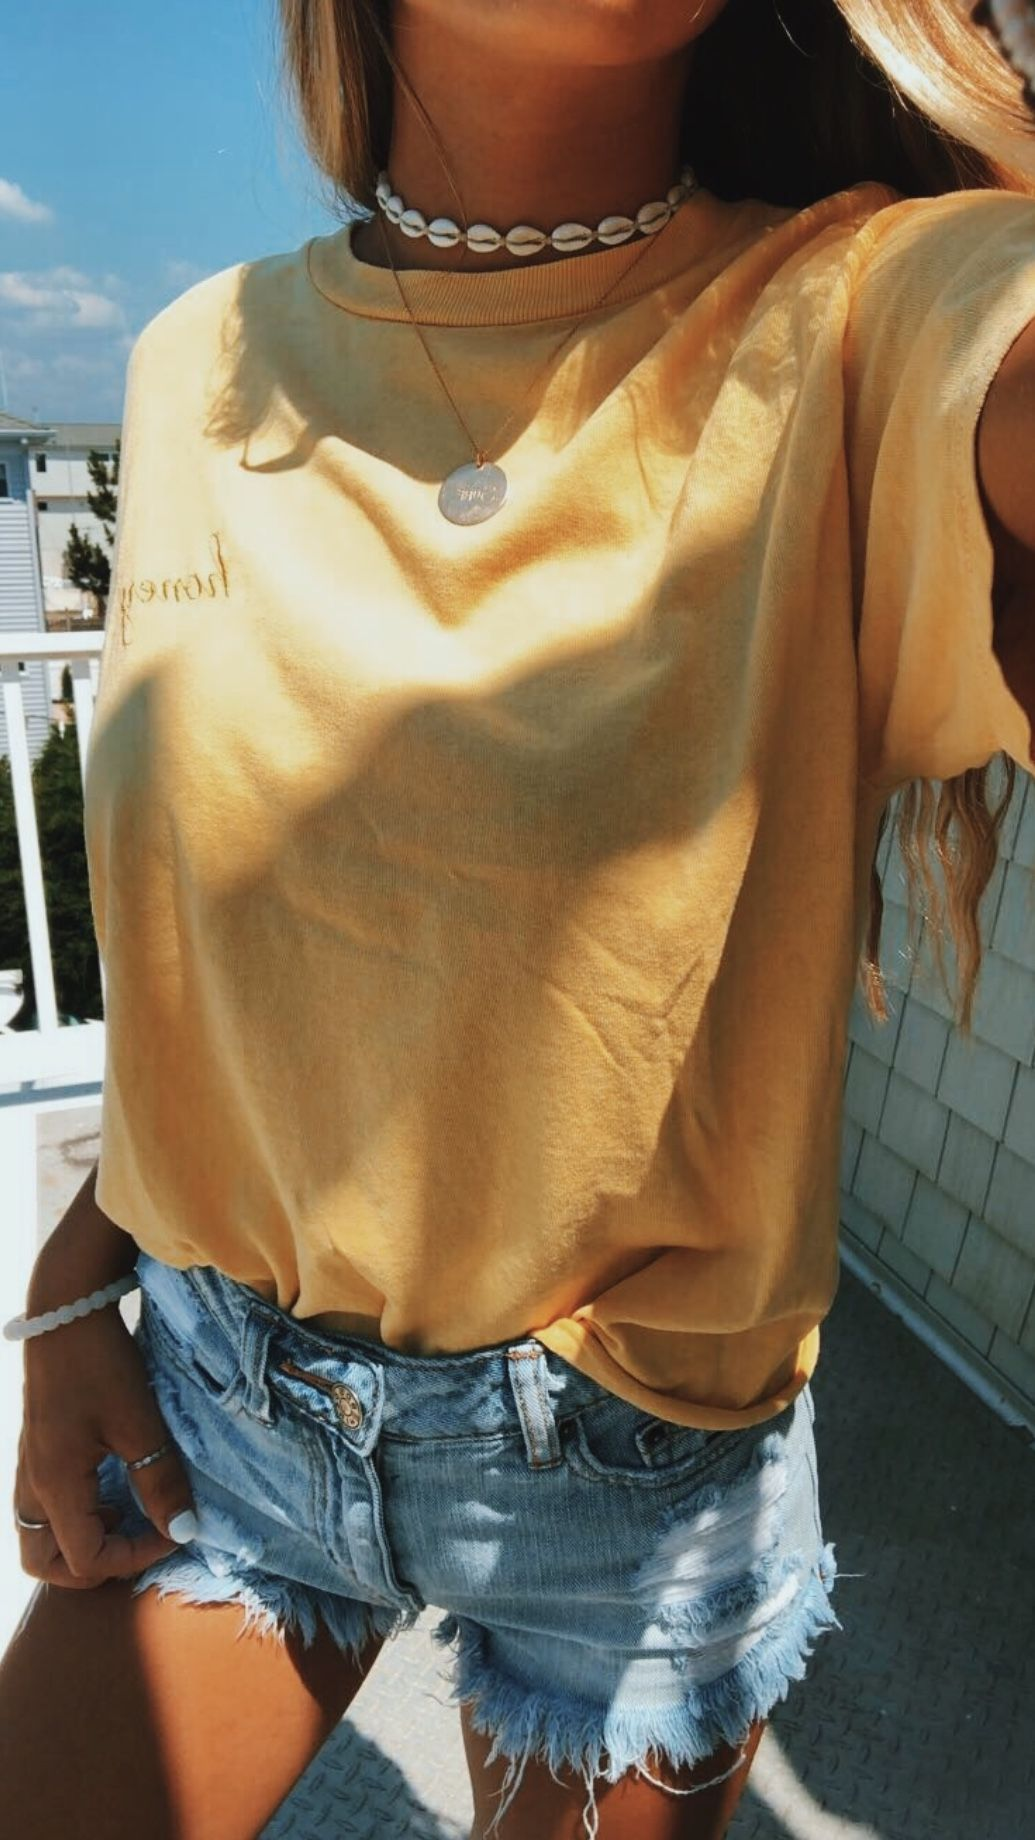 f50e59d0 Brandy Melville honey top. Cute outfit. Teen fashion. Summer aesthetic